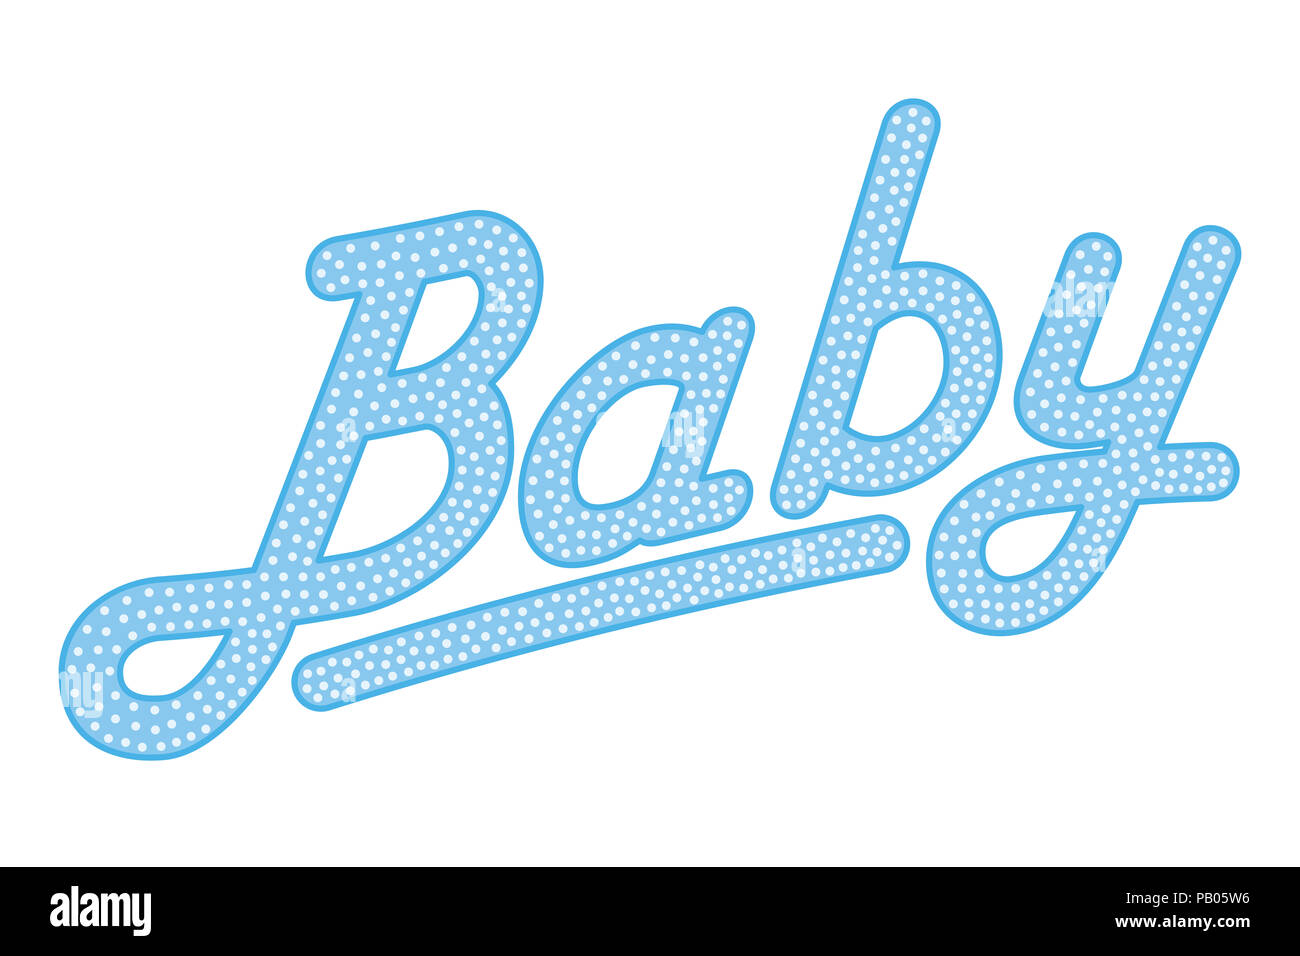 Cursive lettering of the word BABY, blue colored with bright and small dots. Randomly dotted, italic writing. Isolated. Illustration over white. - Stock Image